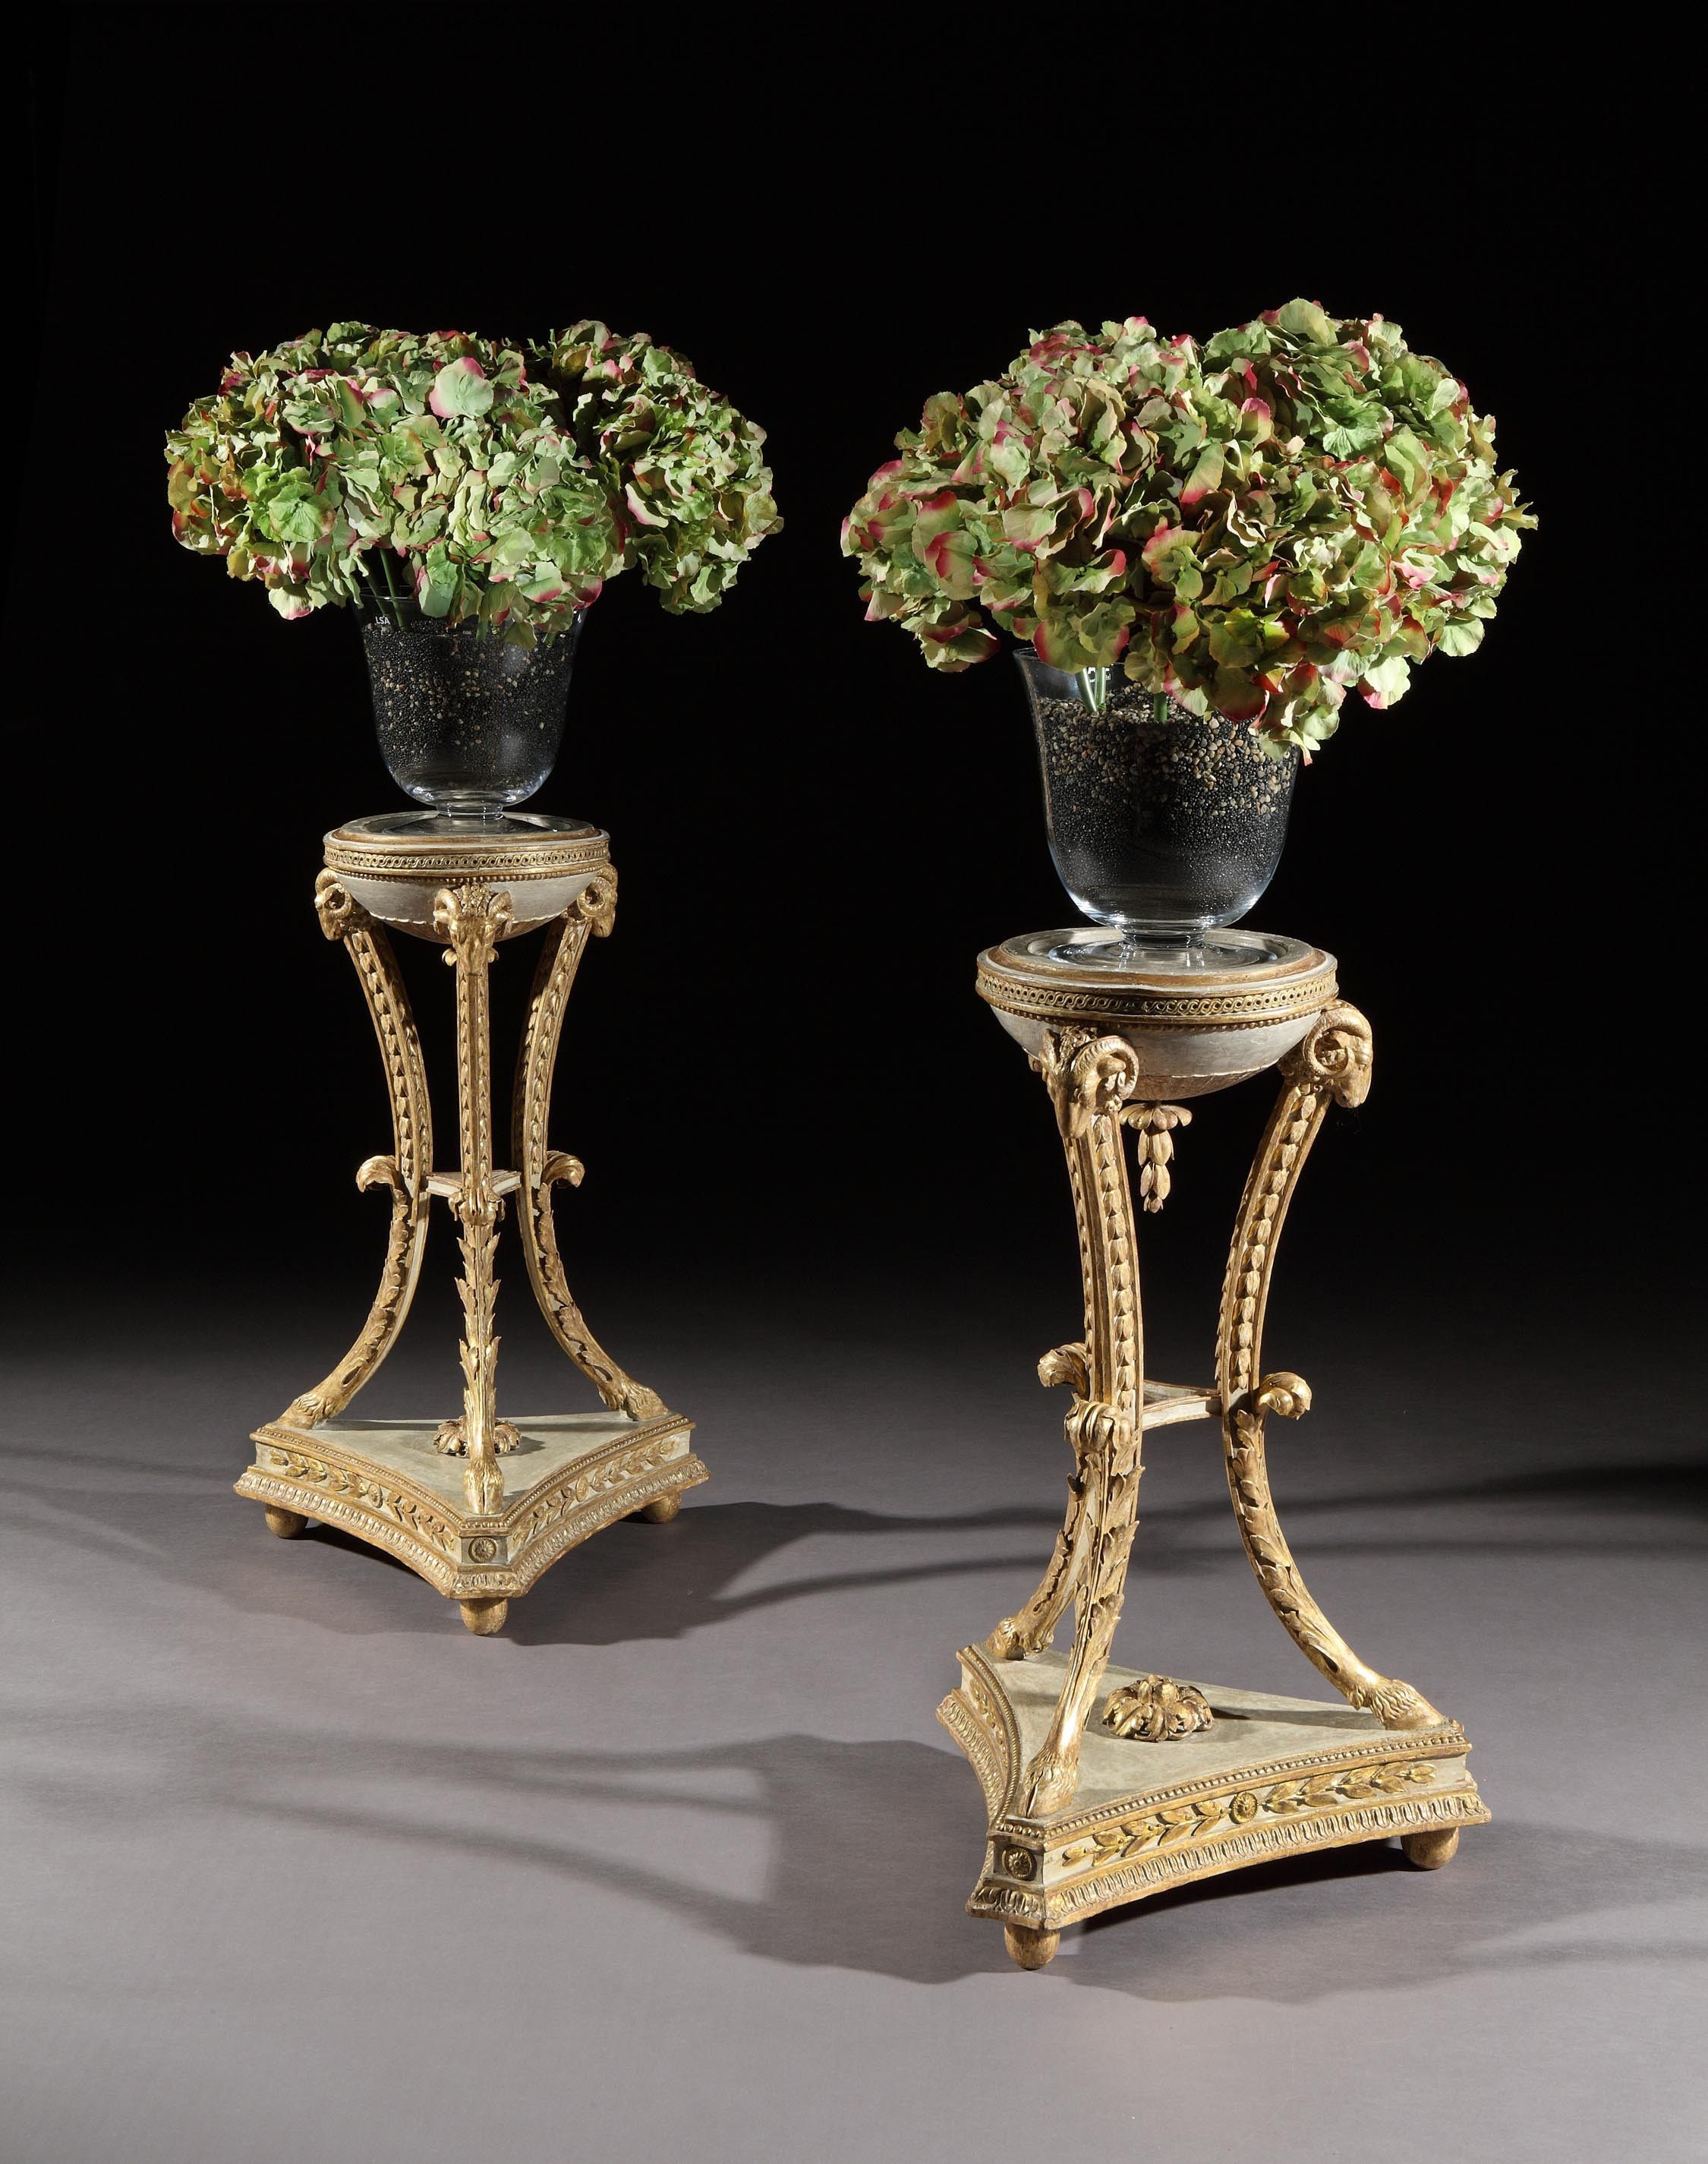 marble vase stand of a pair of adam giltwood stands c 1775 england decorate for a pair of adam giltwood stands